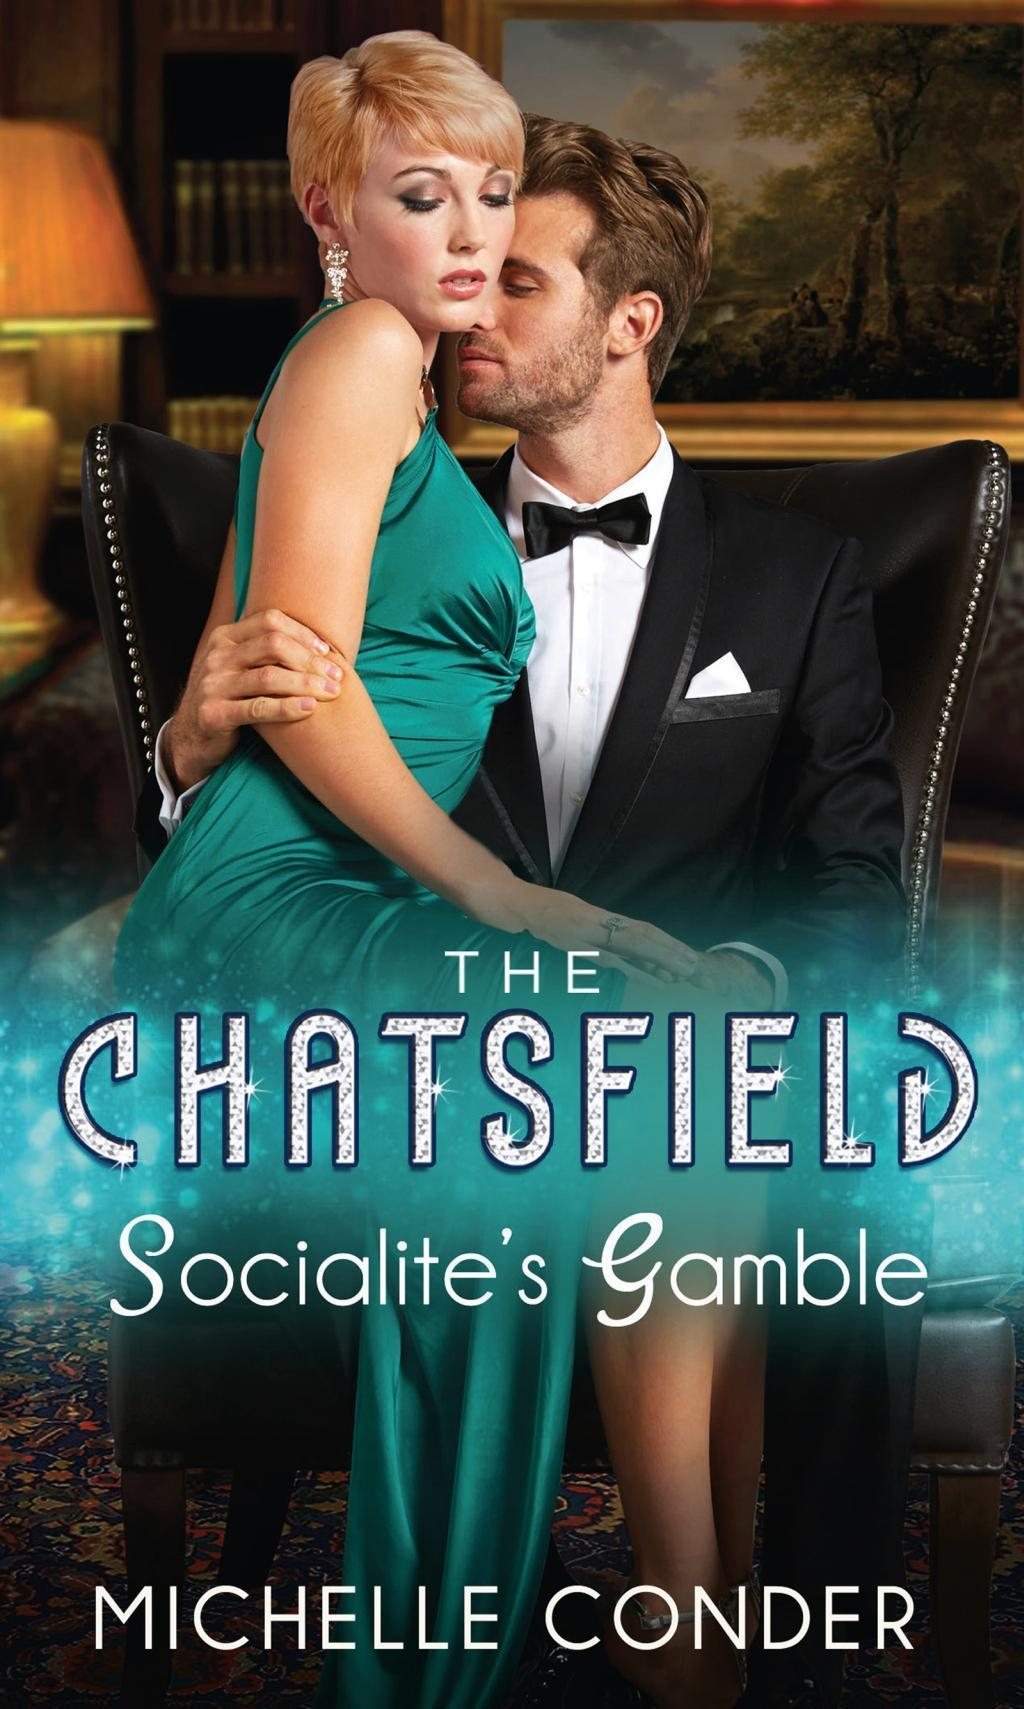 Socialite's Gamble (Mills & Boon M&B) (The Chatsfield, Book 3)